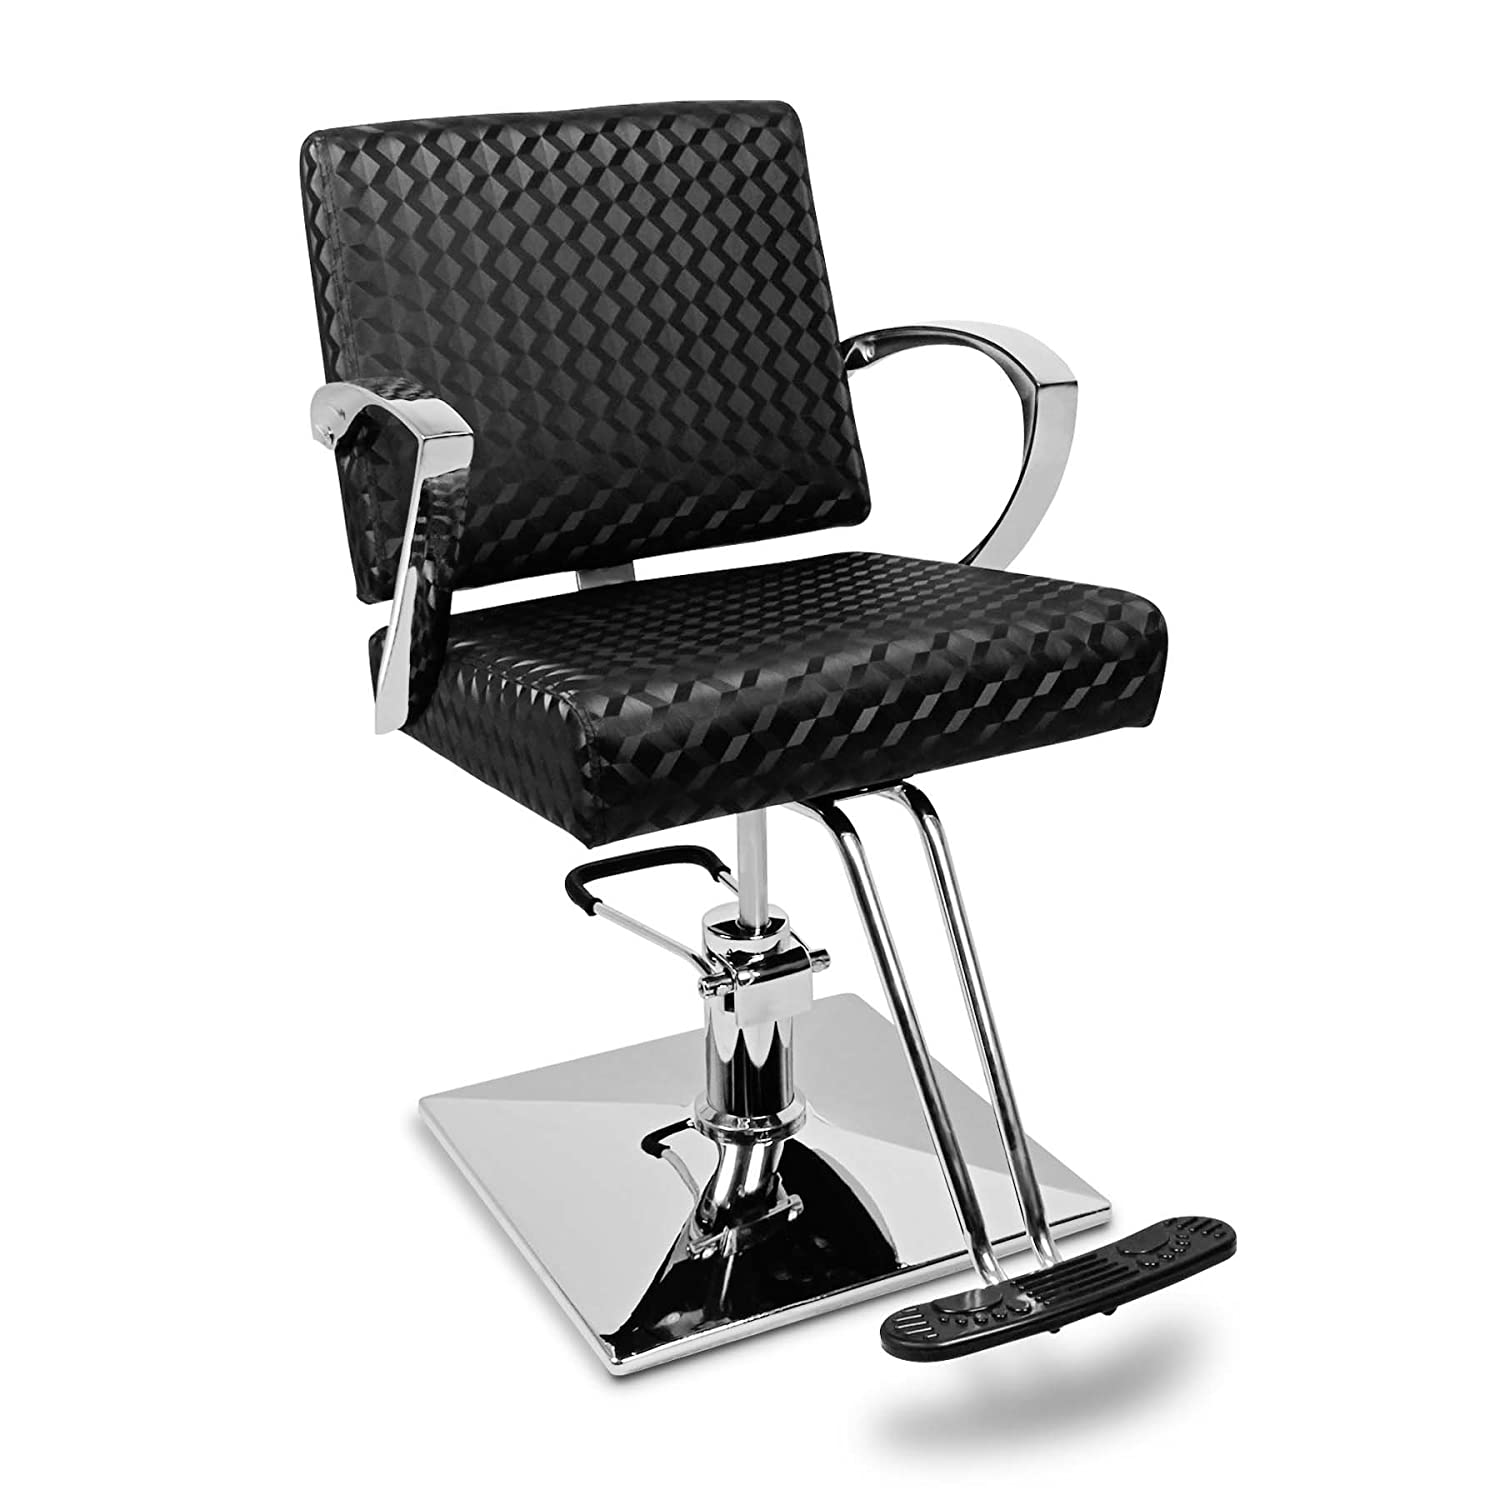 Salon Barbers Barber Chair Styling Tattoo Hairdresser Beauty Hollywood Black BARBER-CH-S03-BK